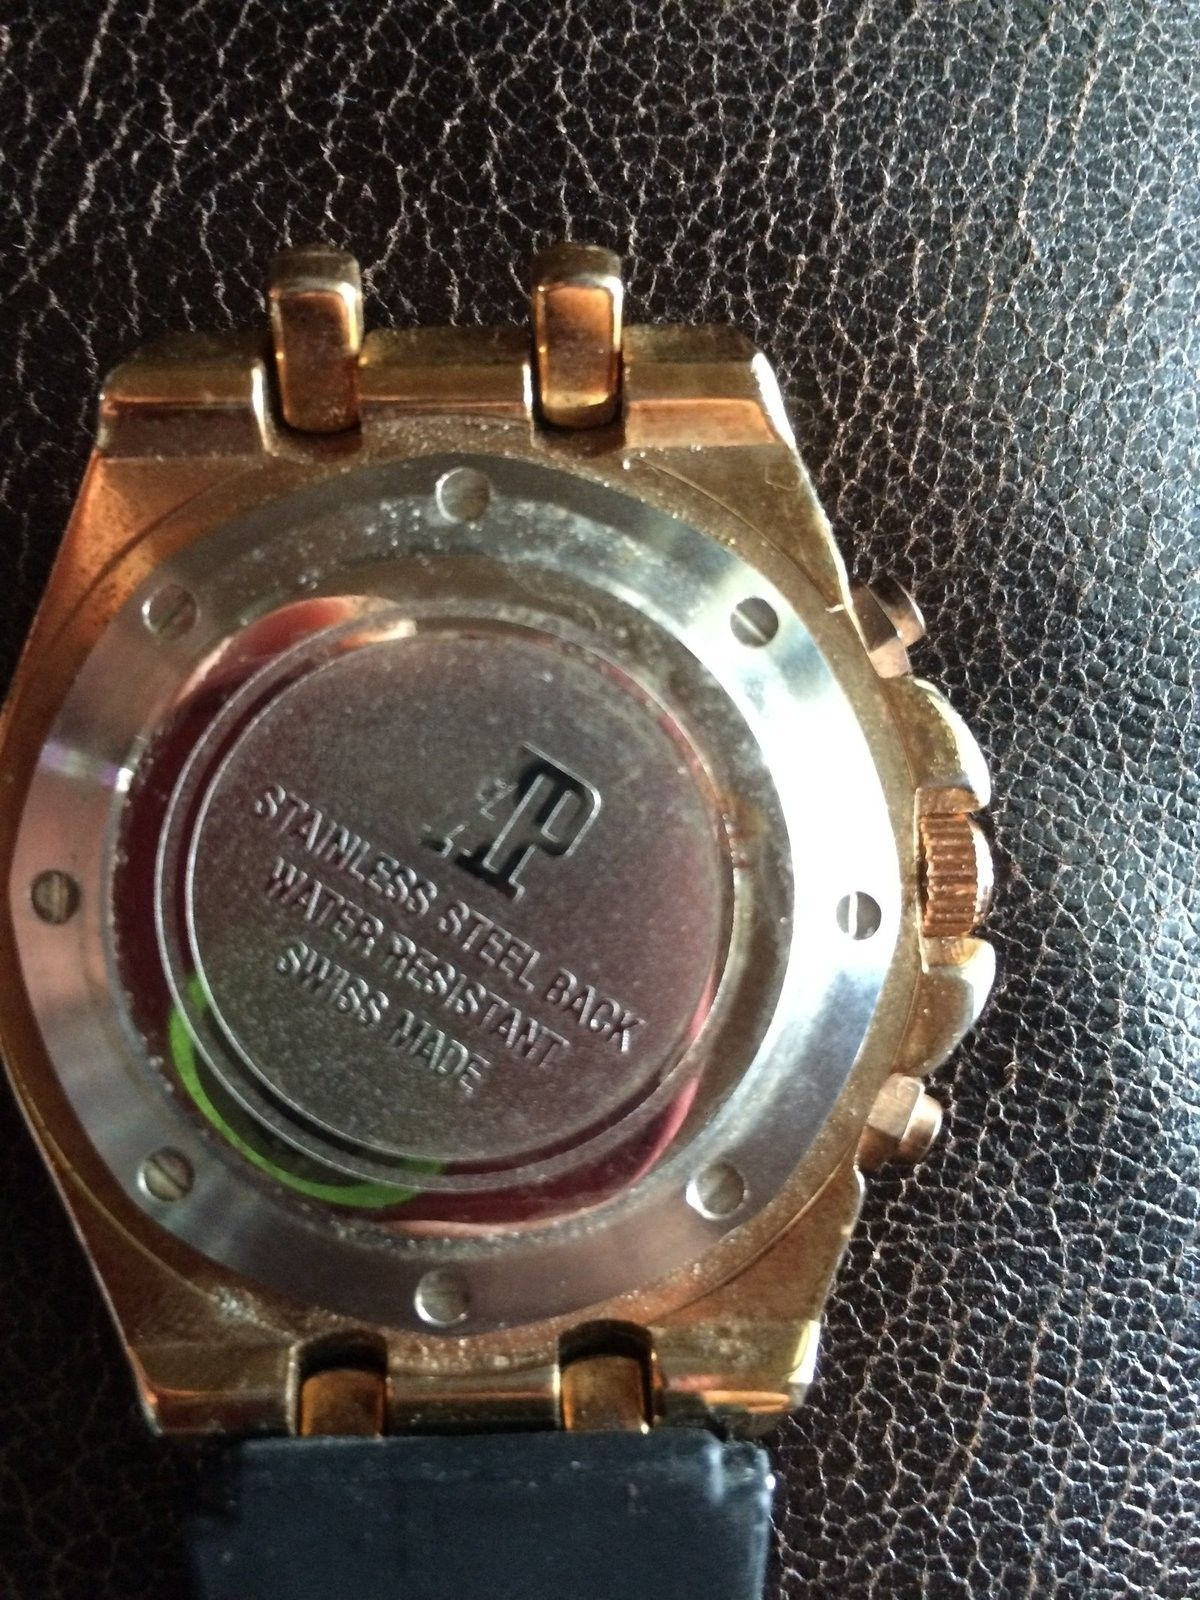 Found this watch, Not Oakley - IMG_3238.JPG